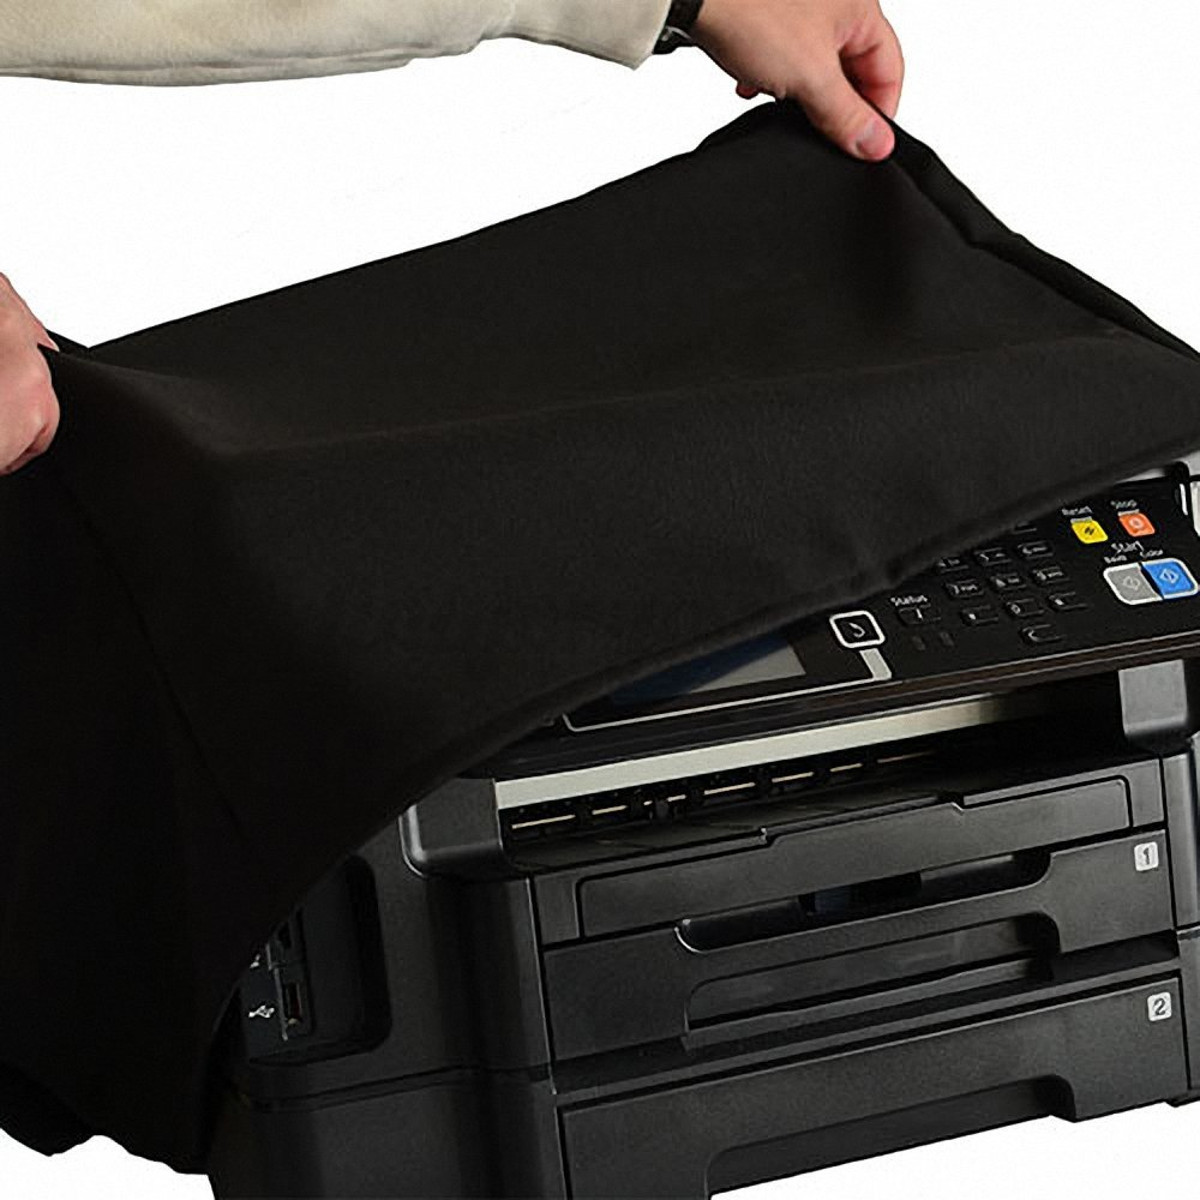 officejet pro 8600 printer manual